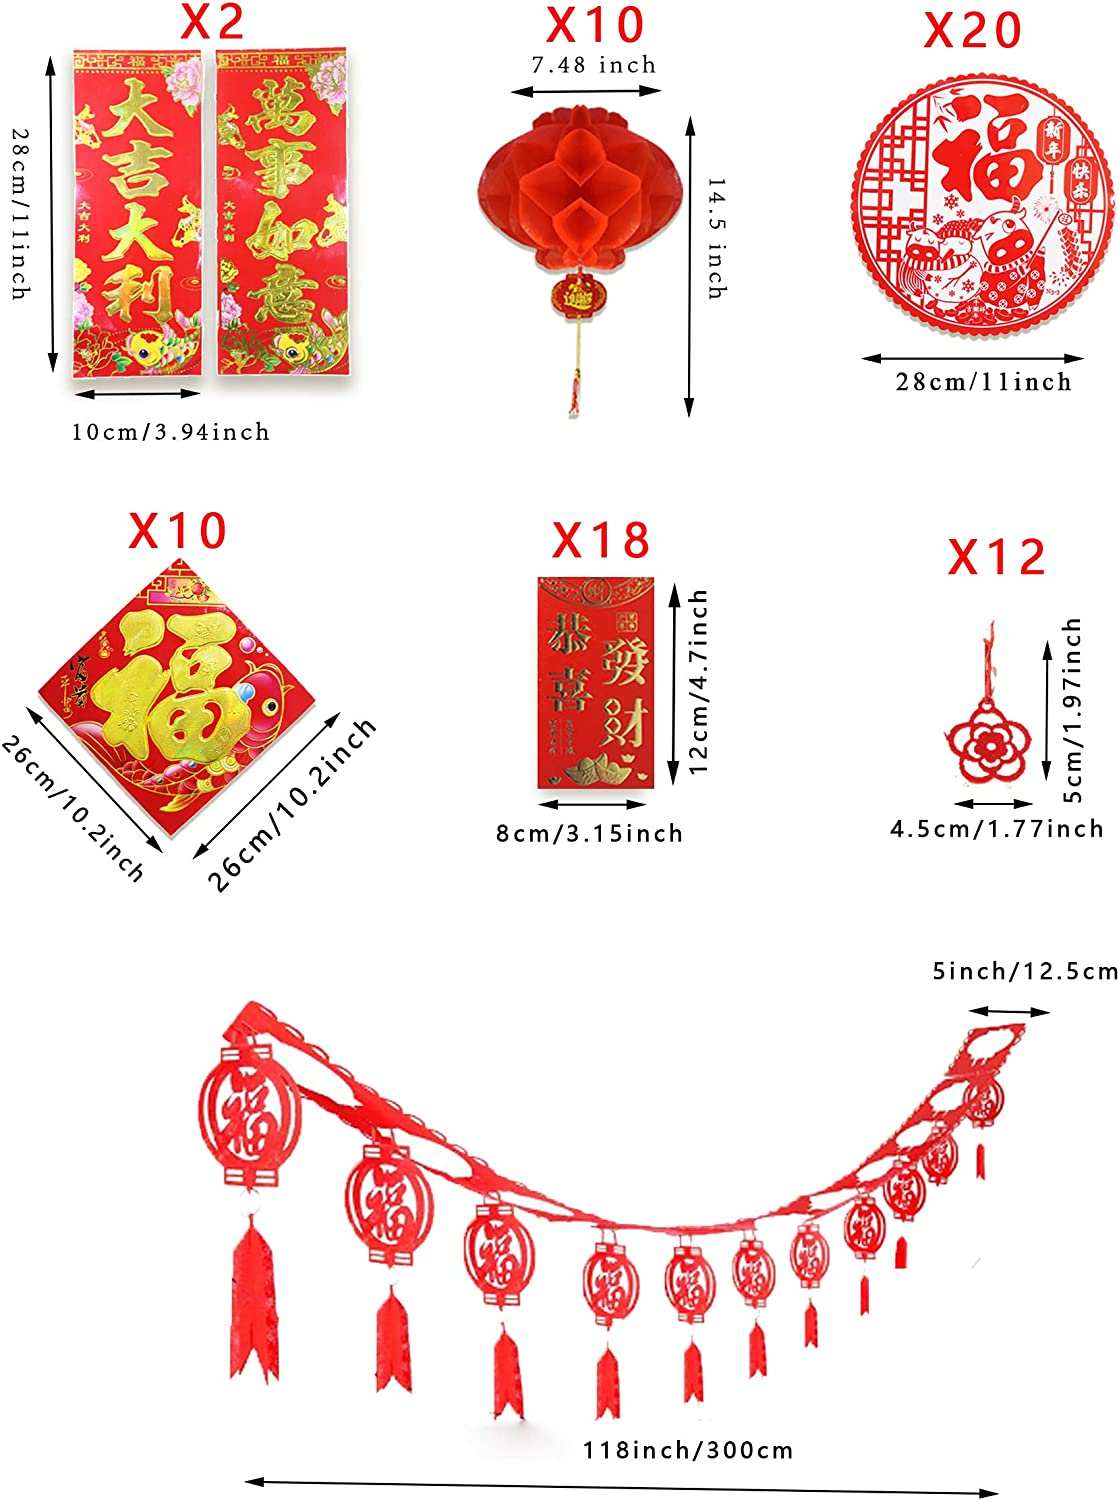 Fu Sticker Red Envelopes including Chinese Couplet Red Lantern Fu Character Hanging Garland Felt Hanging Ornaments for 2021 Spring Festival Party Decor 75 Pieces Chinese New Year Decoration Set